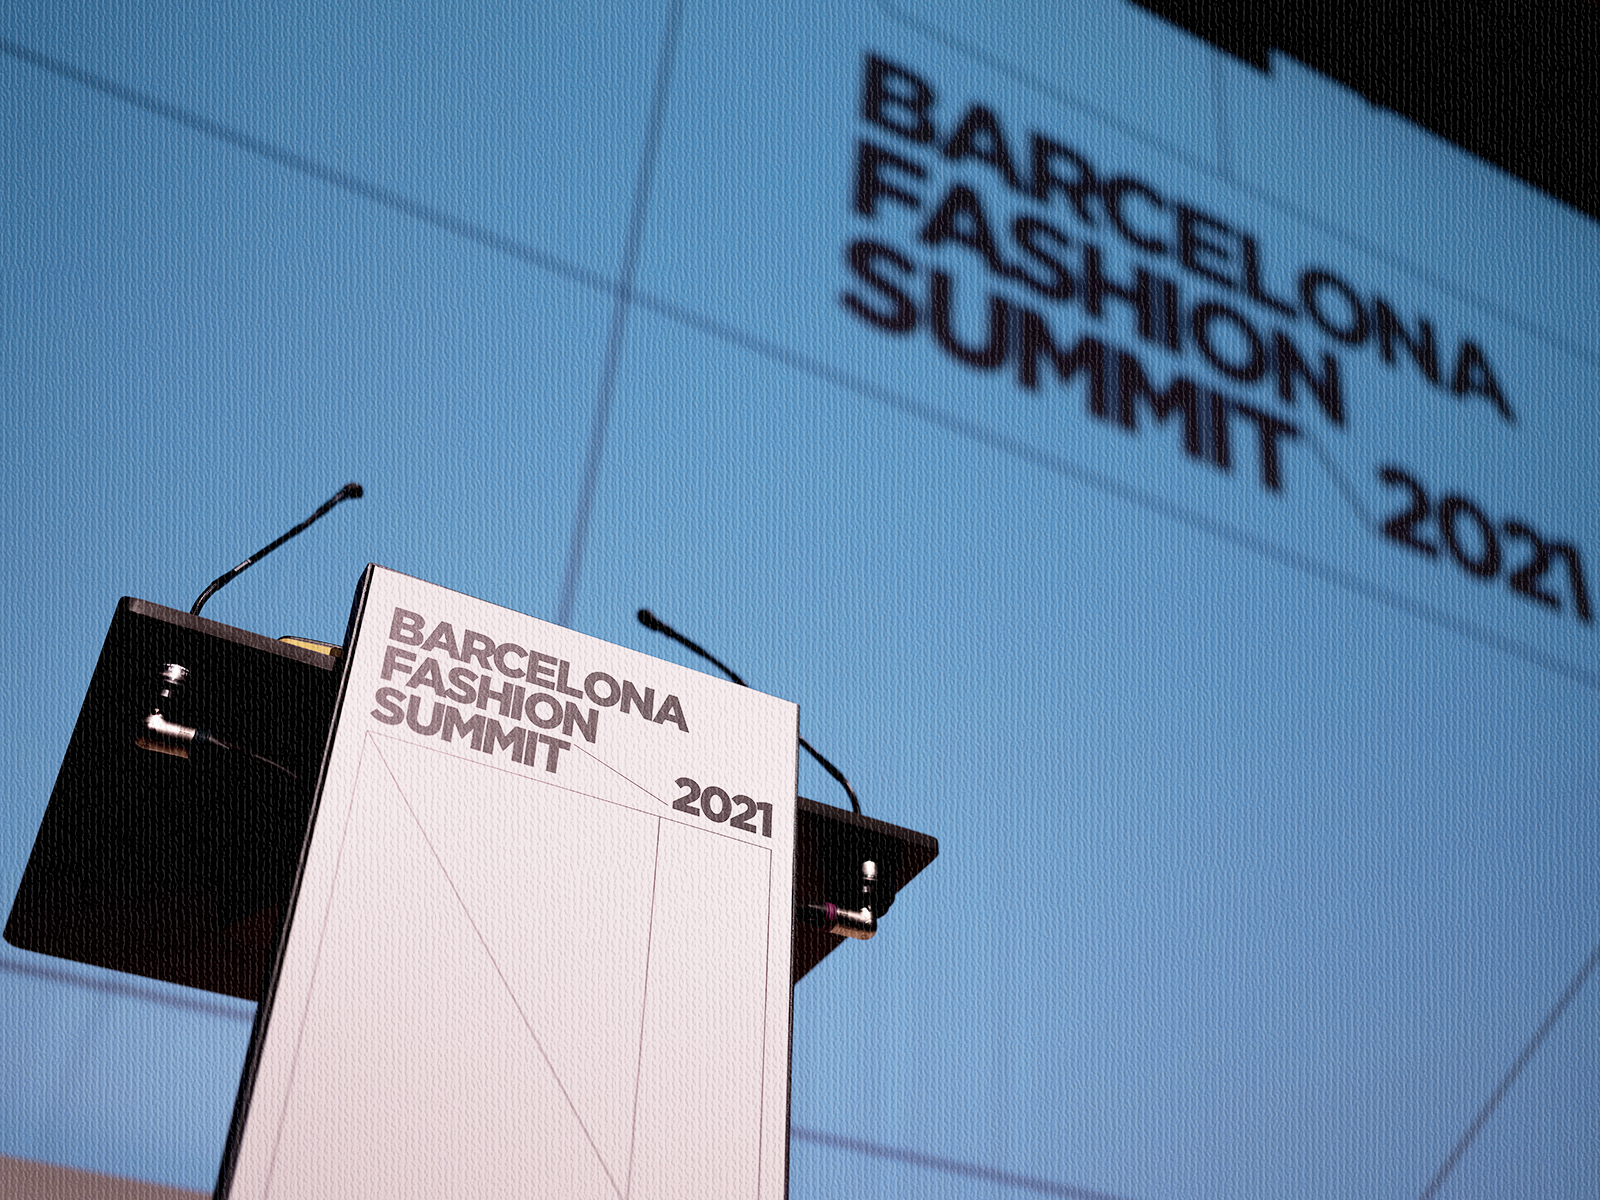 /bfs21/slideshows/2.png